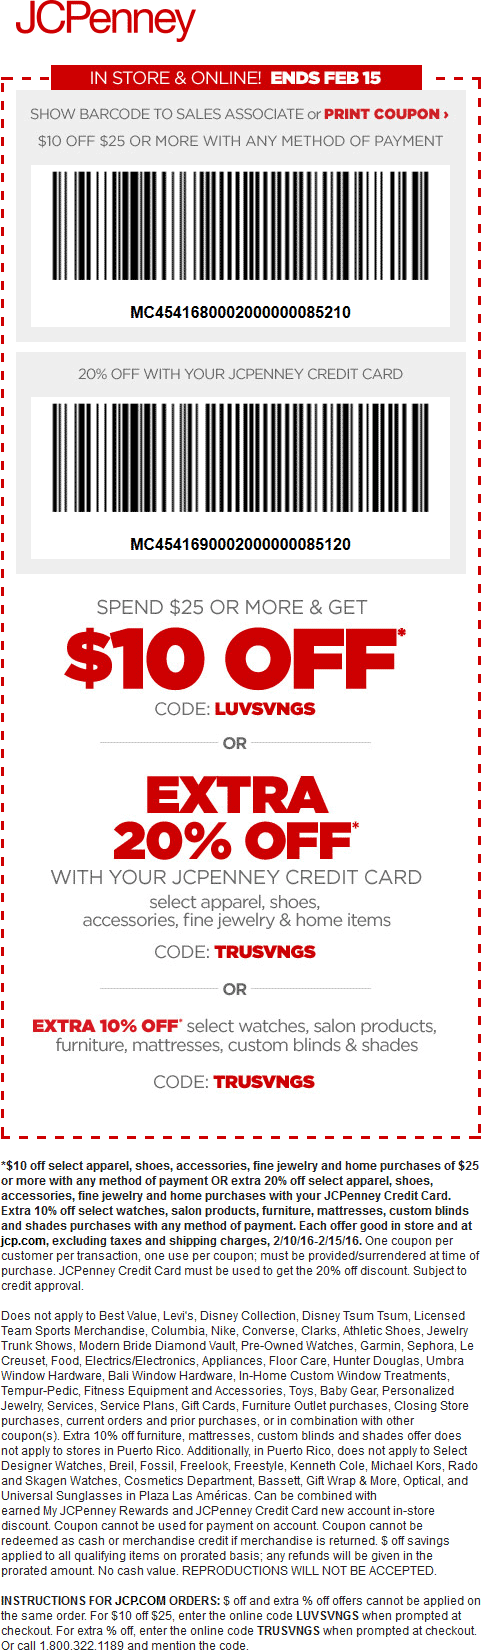 JCPenney Coupon May 2017 $10 off $25 at JCPenney, or online via promo code LUVSVNGS